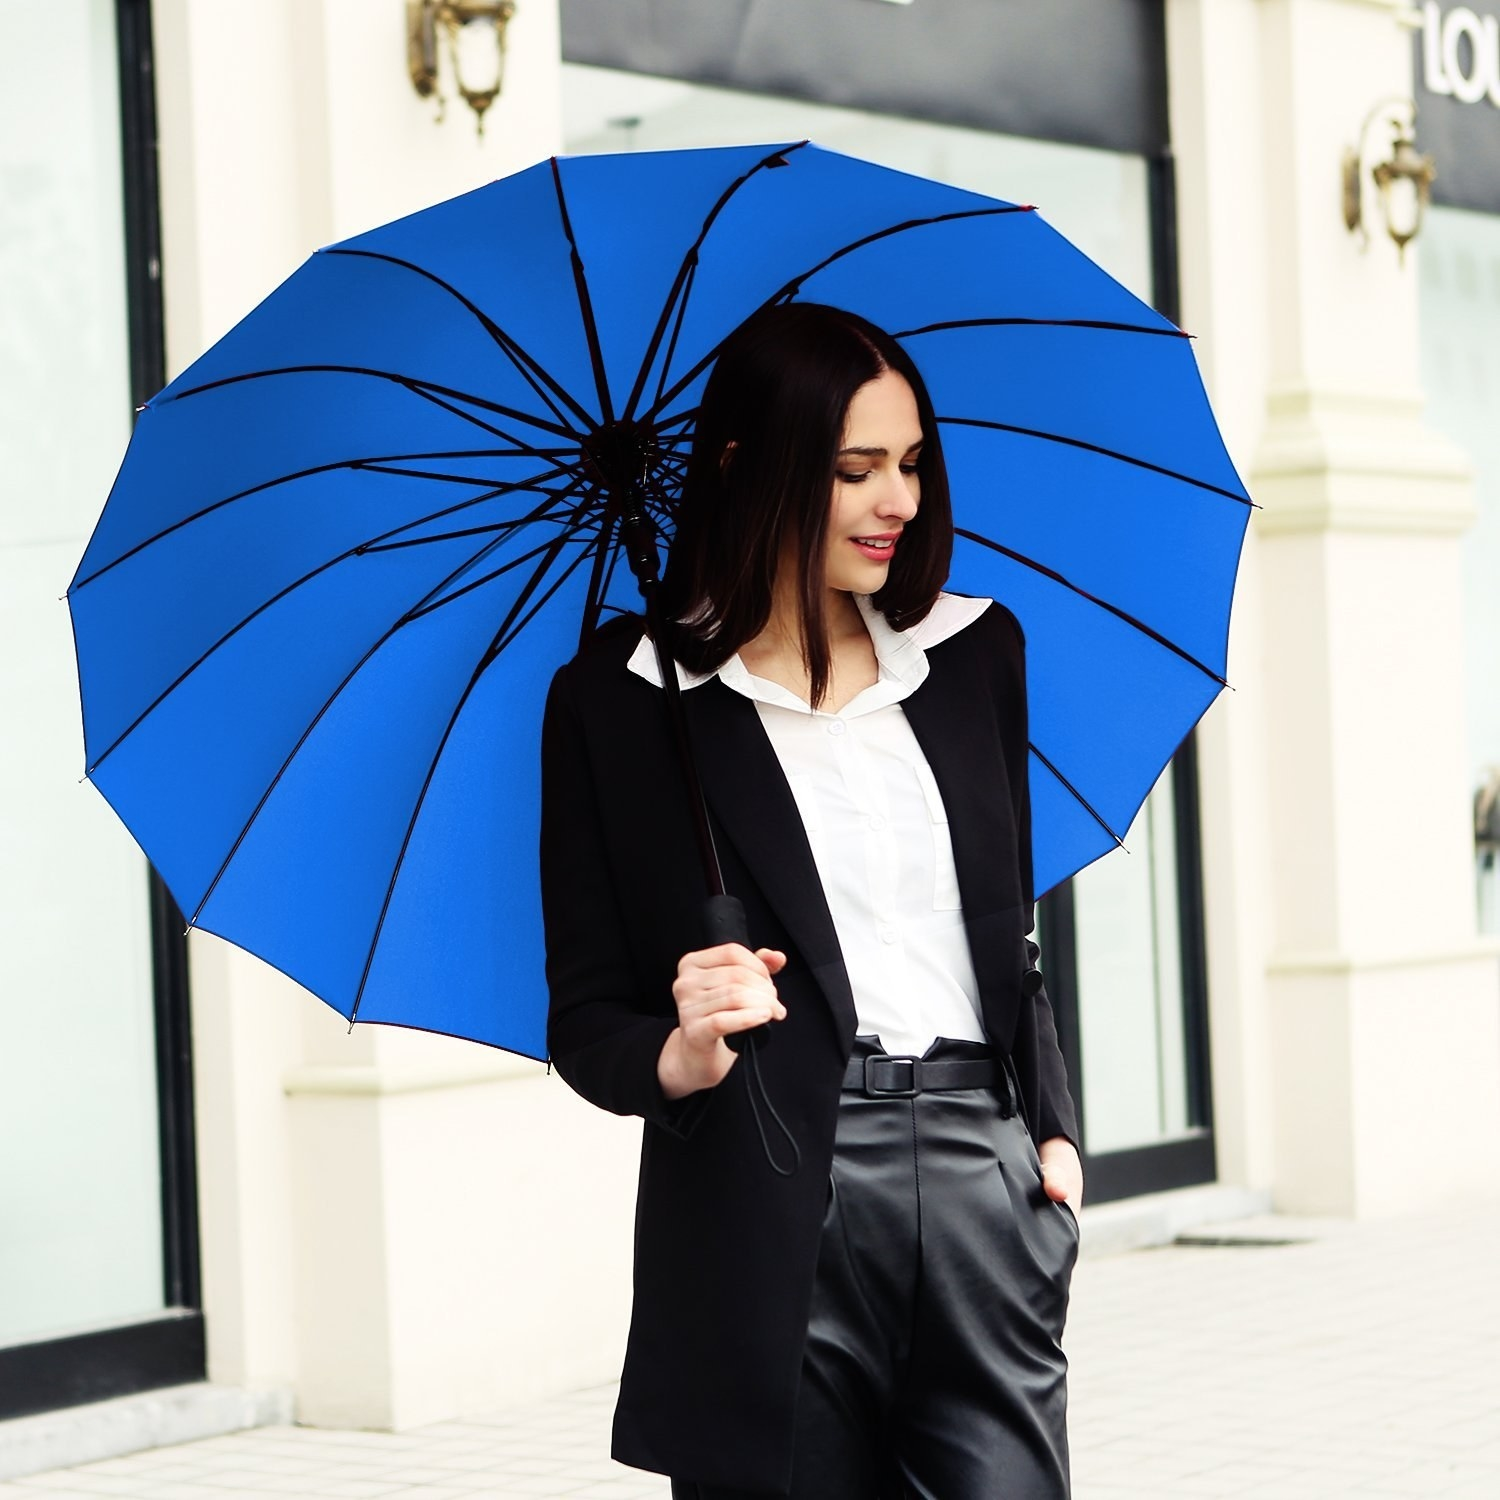 dc78018fe5404 21 Of The Best Umbrellas You Can Get On Amazon